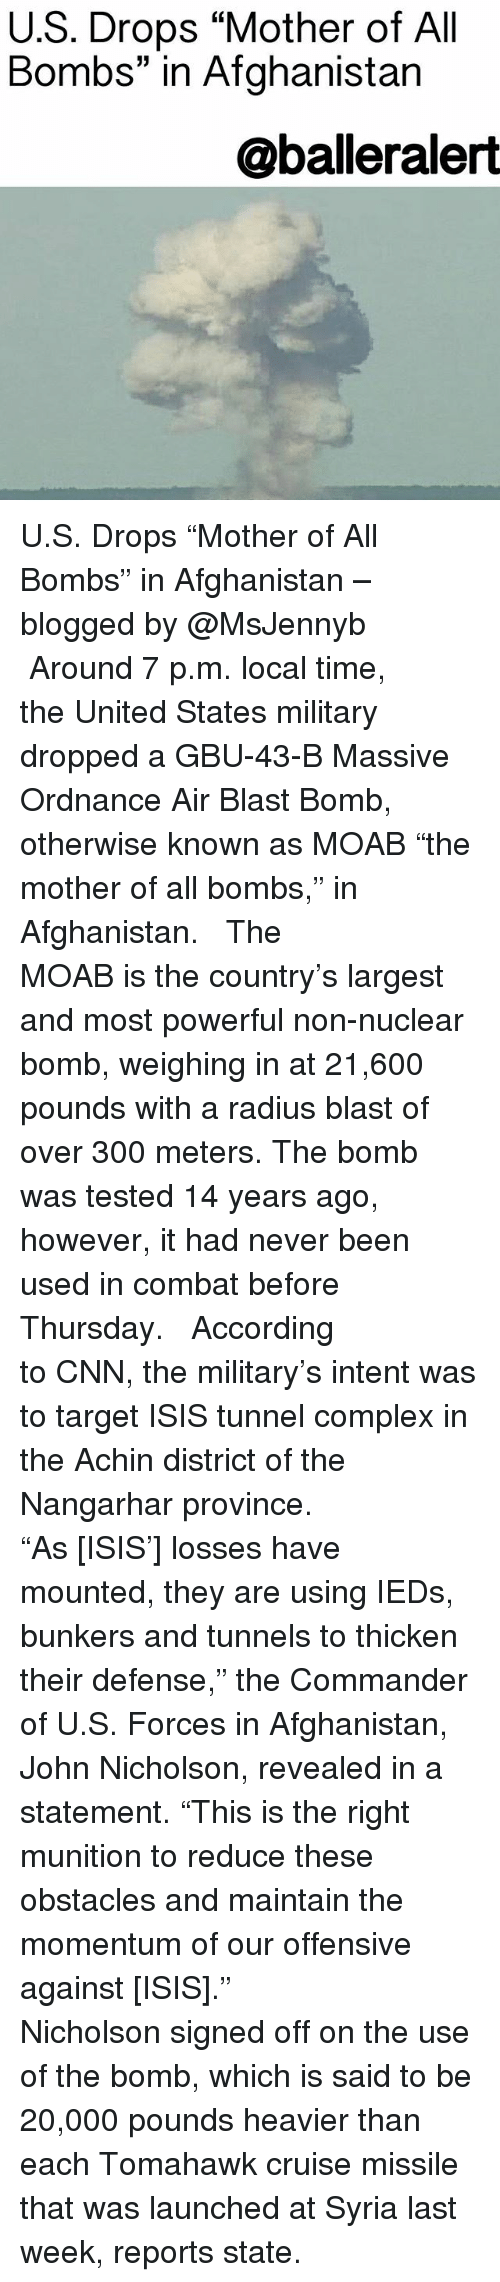 """the commander: U.S. Drops """"Mother of All  Bombs"""" in Afghanistan  @balleralert U.S. Drops """"Mother of All Bombs"""" in Afghanistan – blogged by @MsJennyb ⠀⠀⠀⠀⠀⠀⠀ ⠀⠀⠀⠀⠀⠀⠀ Around 7 p.m. local time, the United States military dropped a GBU-43-B Massive Ordnance Air Blast Bomb, otherwise known as MOAB """"the mother of all bombs,"""" in Afghanistan. ⠀⠀⠀⠀⠀⠀⠀ ⠀⠀⠀⠀⠀⠀⠀ The MOAB is the country's largest and most powerful non-nuclear bomb, weighing in at 21,600 pounds with a radius blast of over 300 meters. The bomb was tested 14 years ago, however, it had never been used in combat before Thursday. ⠀⠀⠀⠀⠀⠀⠀ ⠀⠀⠀⠀⠀⠀⠀ According to CNN, the military's intent was to target ISIS tunnel complex in the Achin district of the Nangarhar province. ⠀⠀⠀⠀⠀⠀⠀ ⠀⠀⠀⠀⠀⠀⠀ """"As [ISIS'] losses have mounted, they are using IEDs, bunkers and tunnels to thicken their defense,"""" the Commander of U.S. Forces in Afghanistan, John Nicholson, revealed in a statement. """"This is the right munition to reduce these obstacles and maintain the momentum of our offensive against [ISIS]."""" ⠀⠀⠀⠀⠀⠀⠀ ⠀⠀⠀⠀⠀⠀⠀ Nicholson signed off on the use of the bomb, which is said to be 20,000 pounds heavier than each Tomahawk cruise missile that was launched at Syria last week, reports state."""